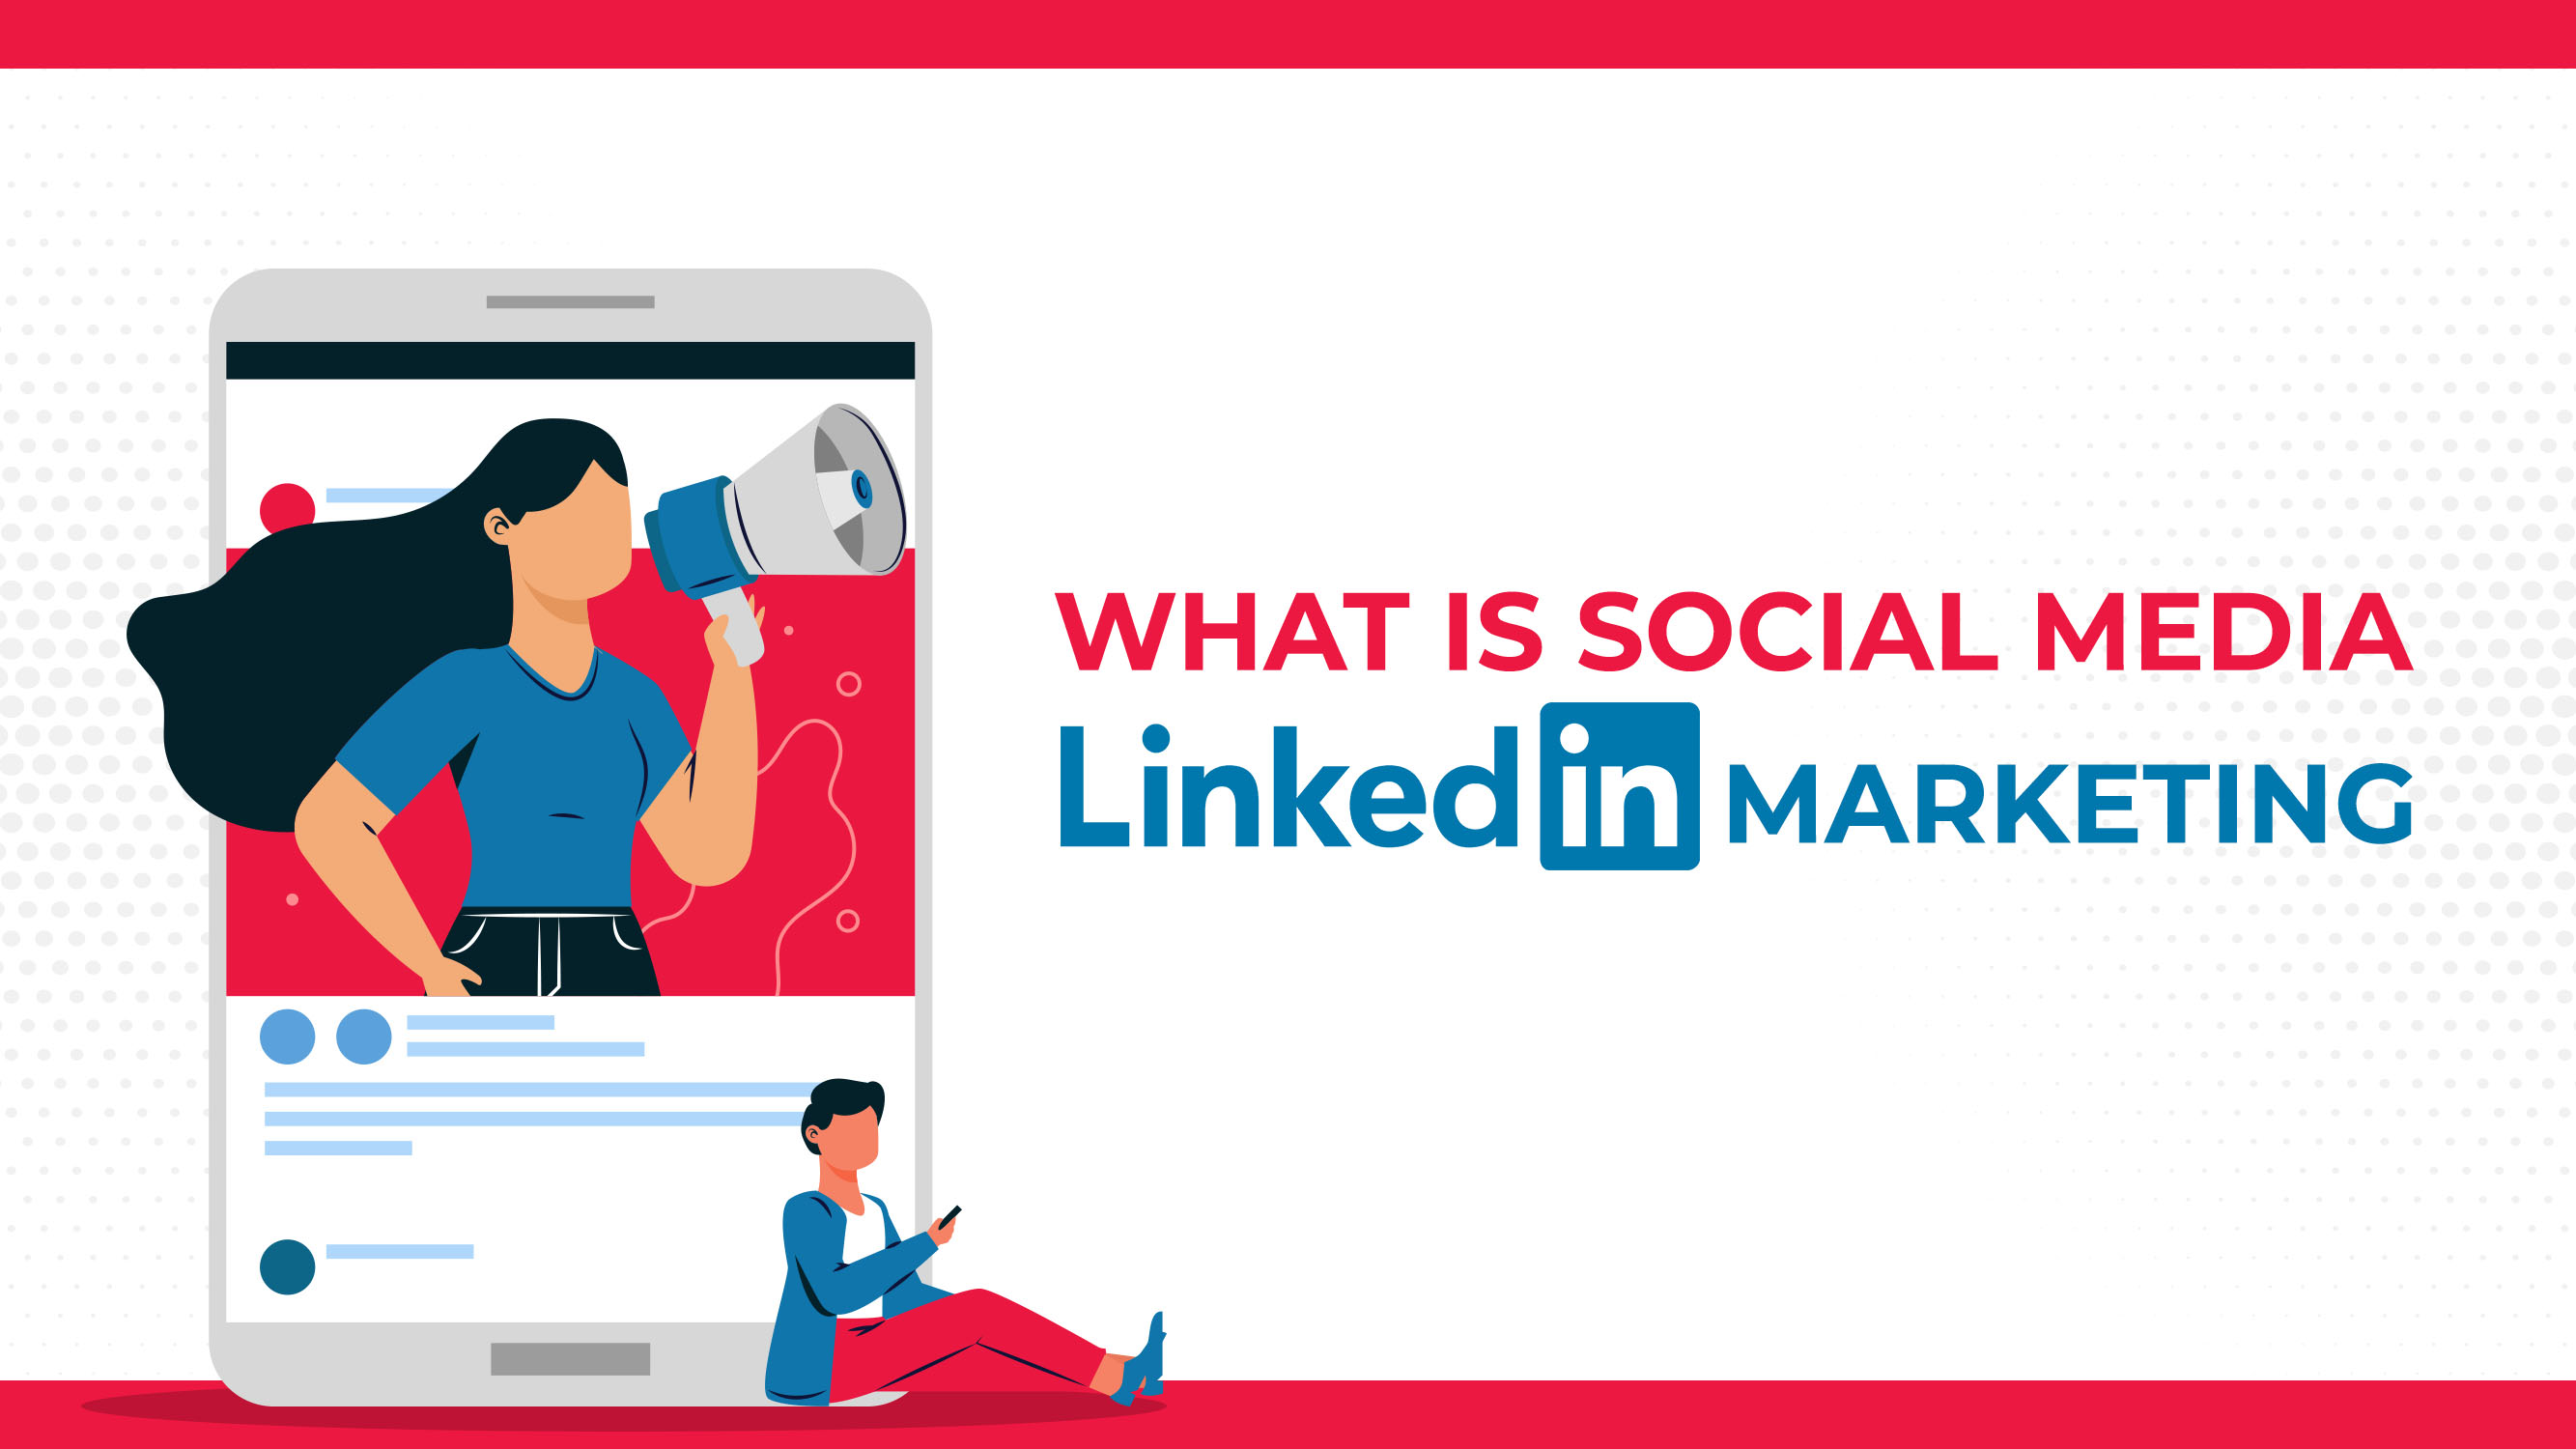 What Is Social Media LinkedIn Marketing?